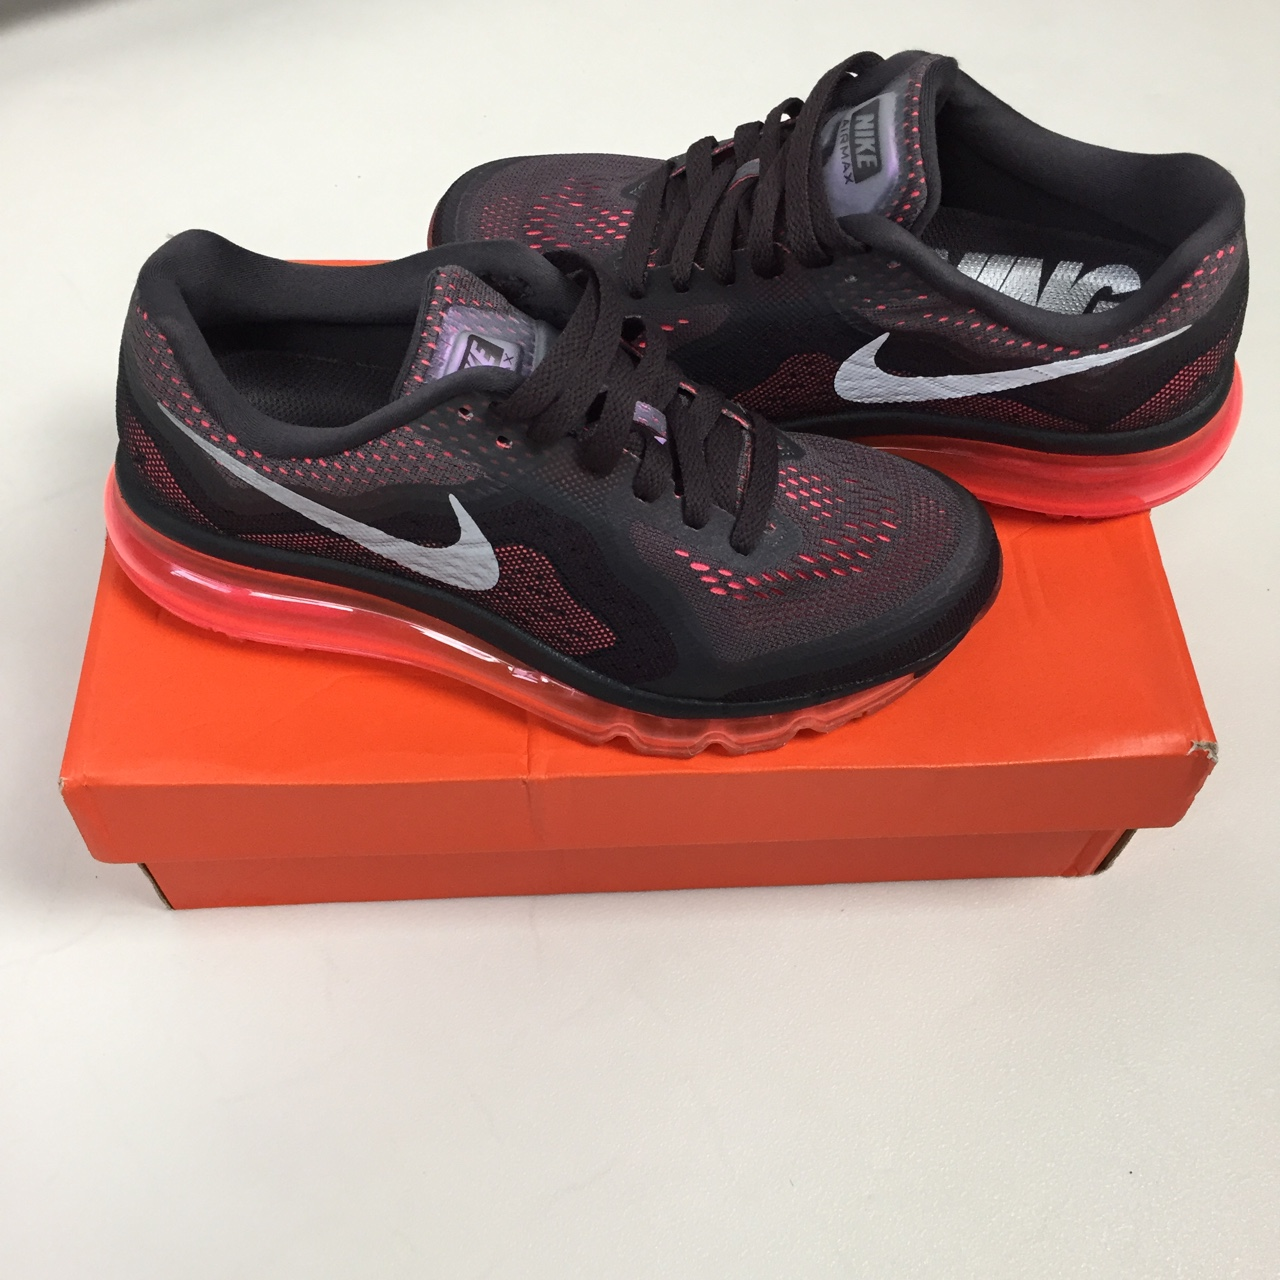 Nike air max running neutral ride. #model 621078 200